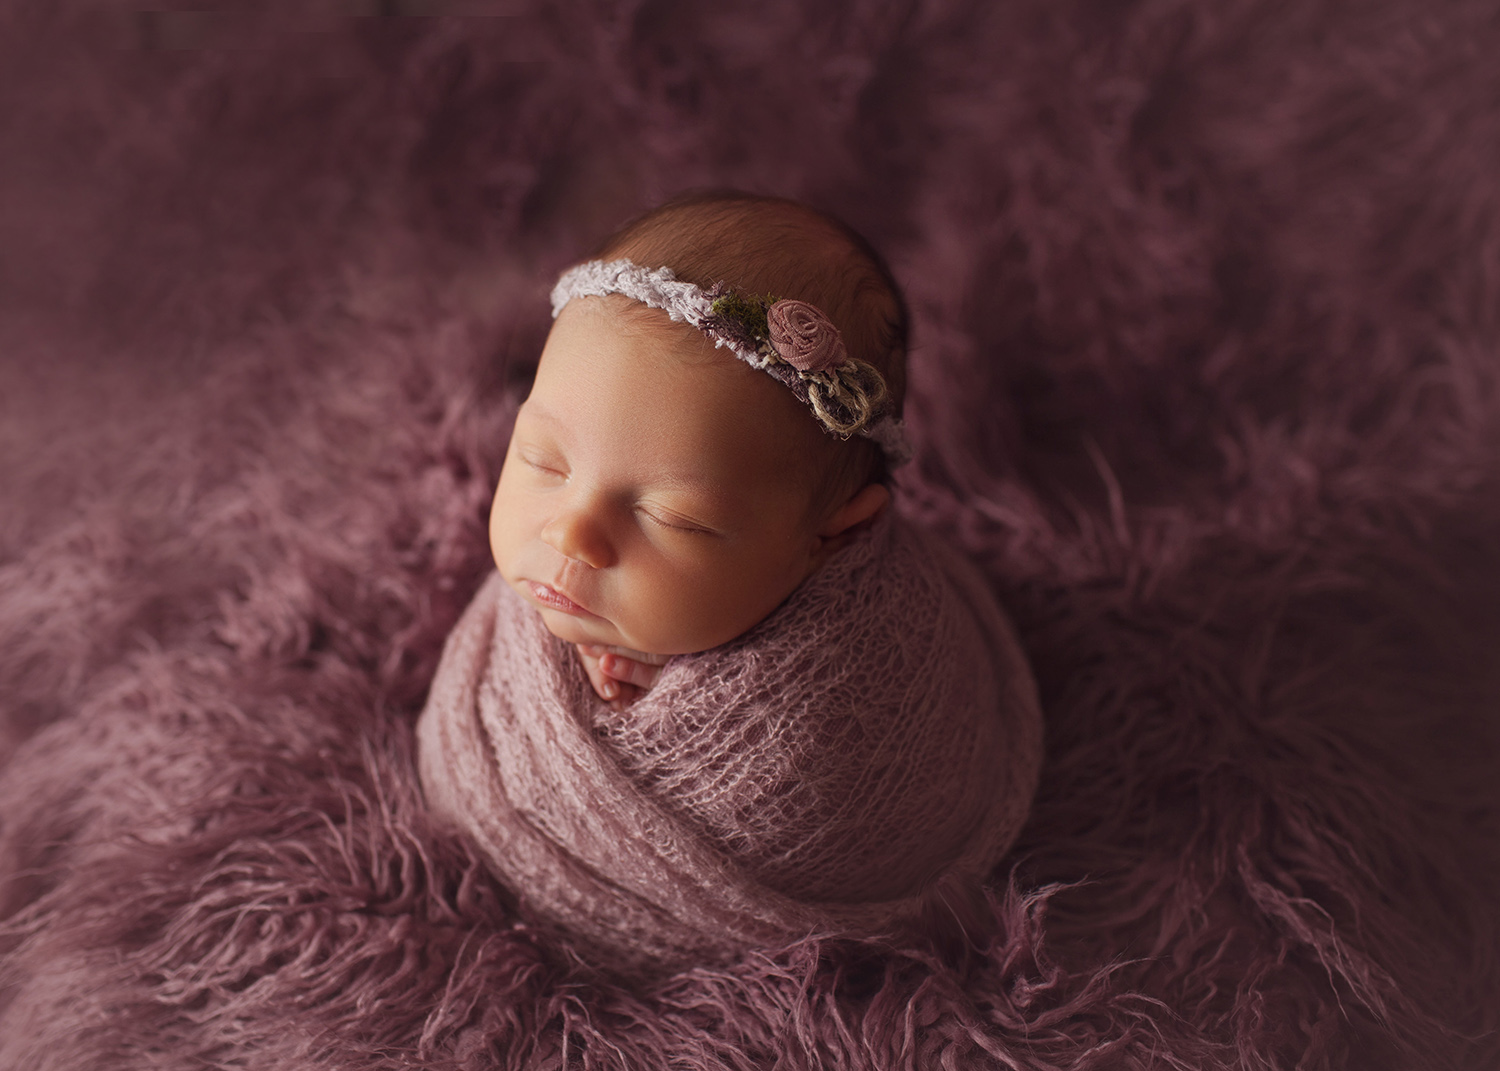 Chelsey-Hill-newborn-photography-breakout-23